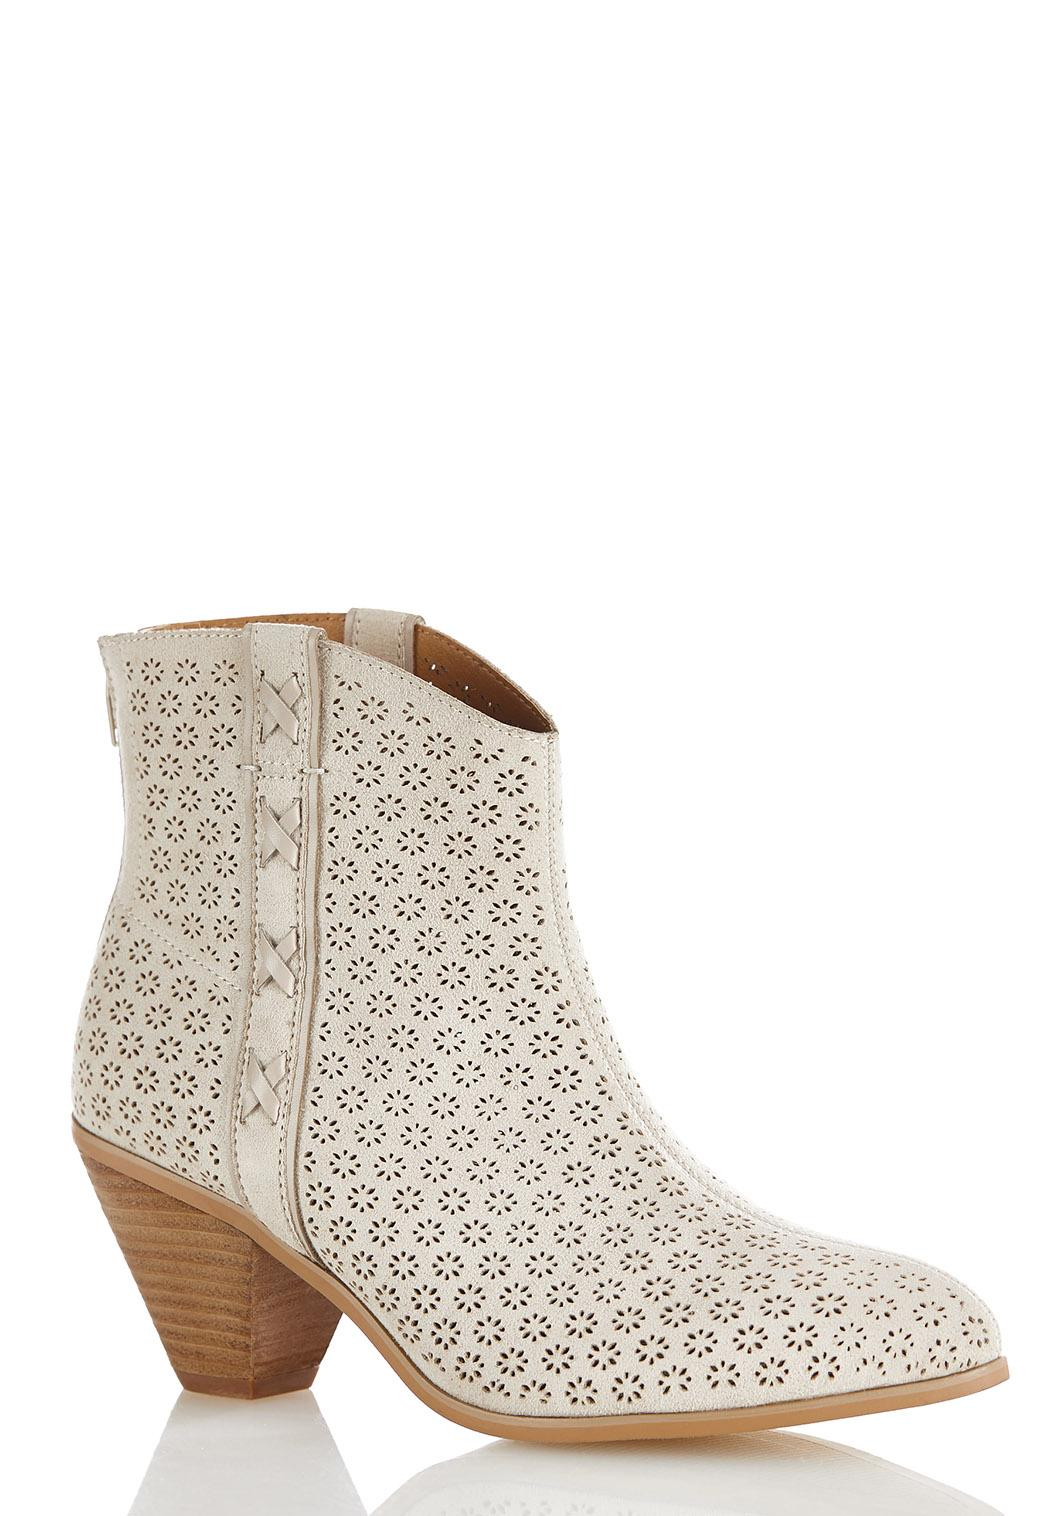 Cutout Western Ankle Boots